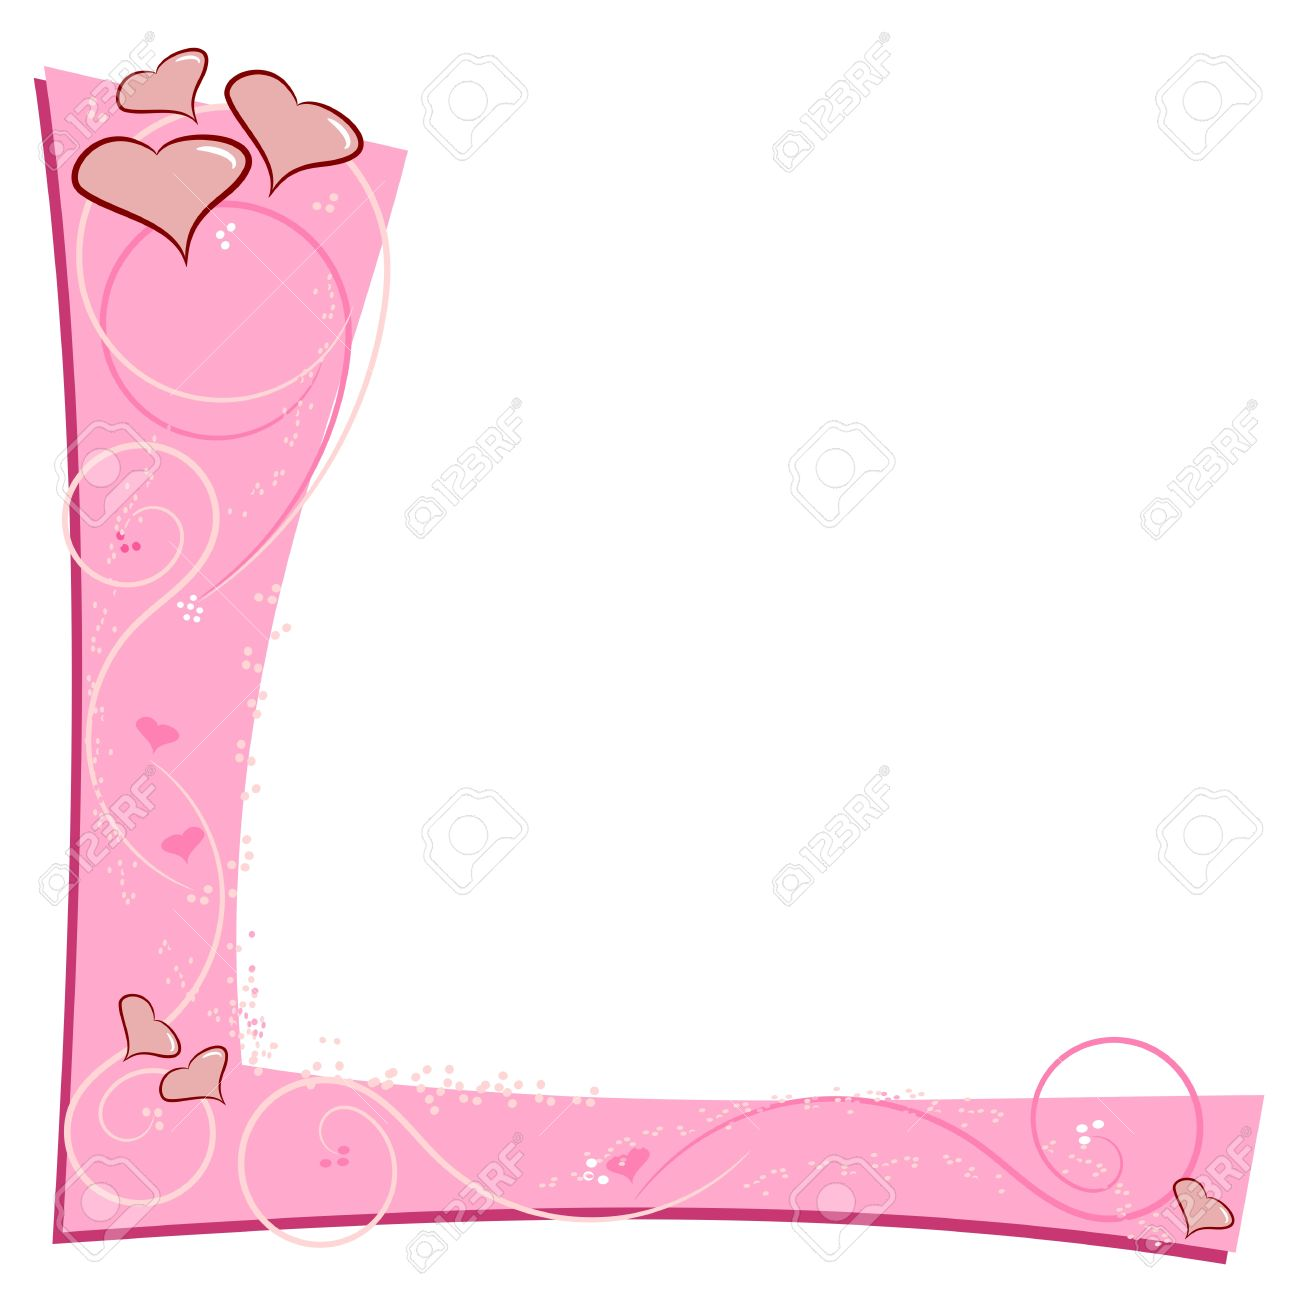 Pink love themed border frame with copy space Stock Vector - 17104124